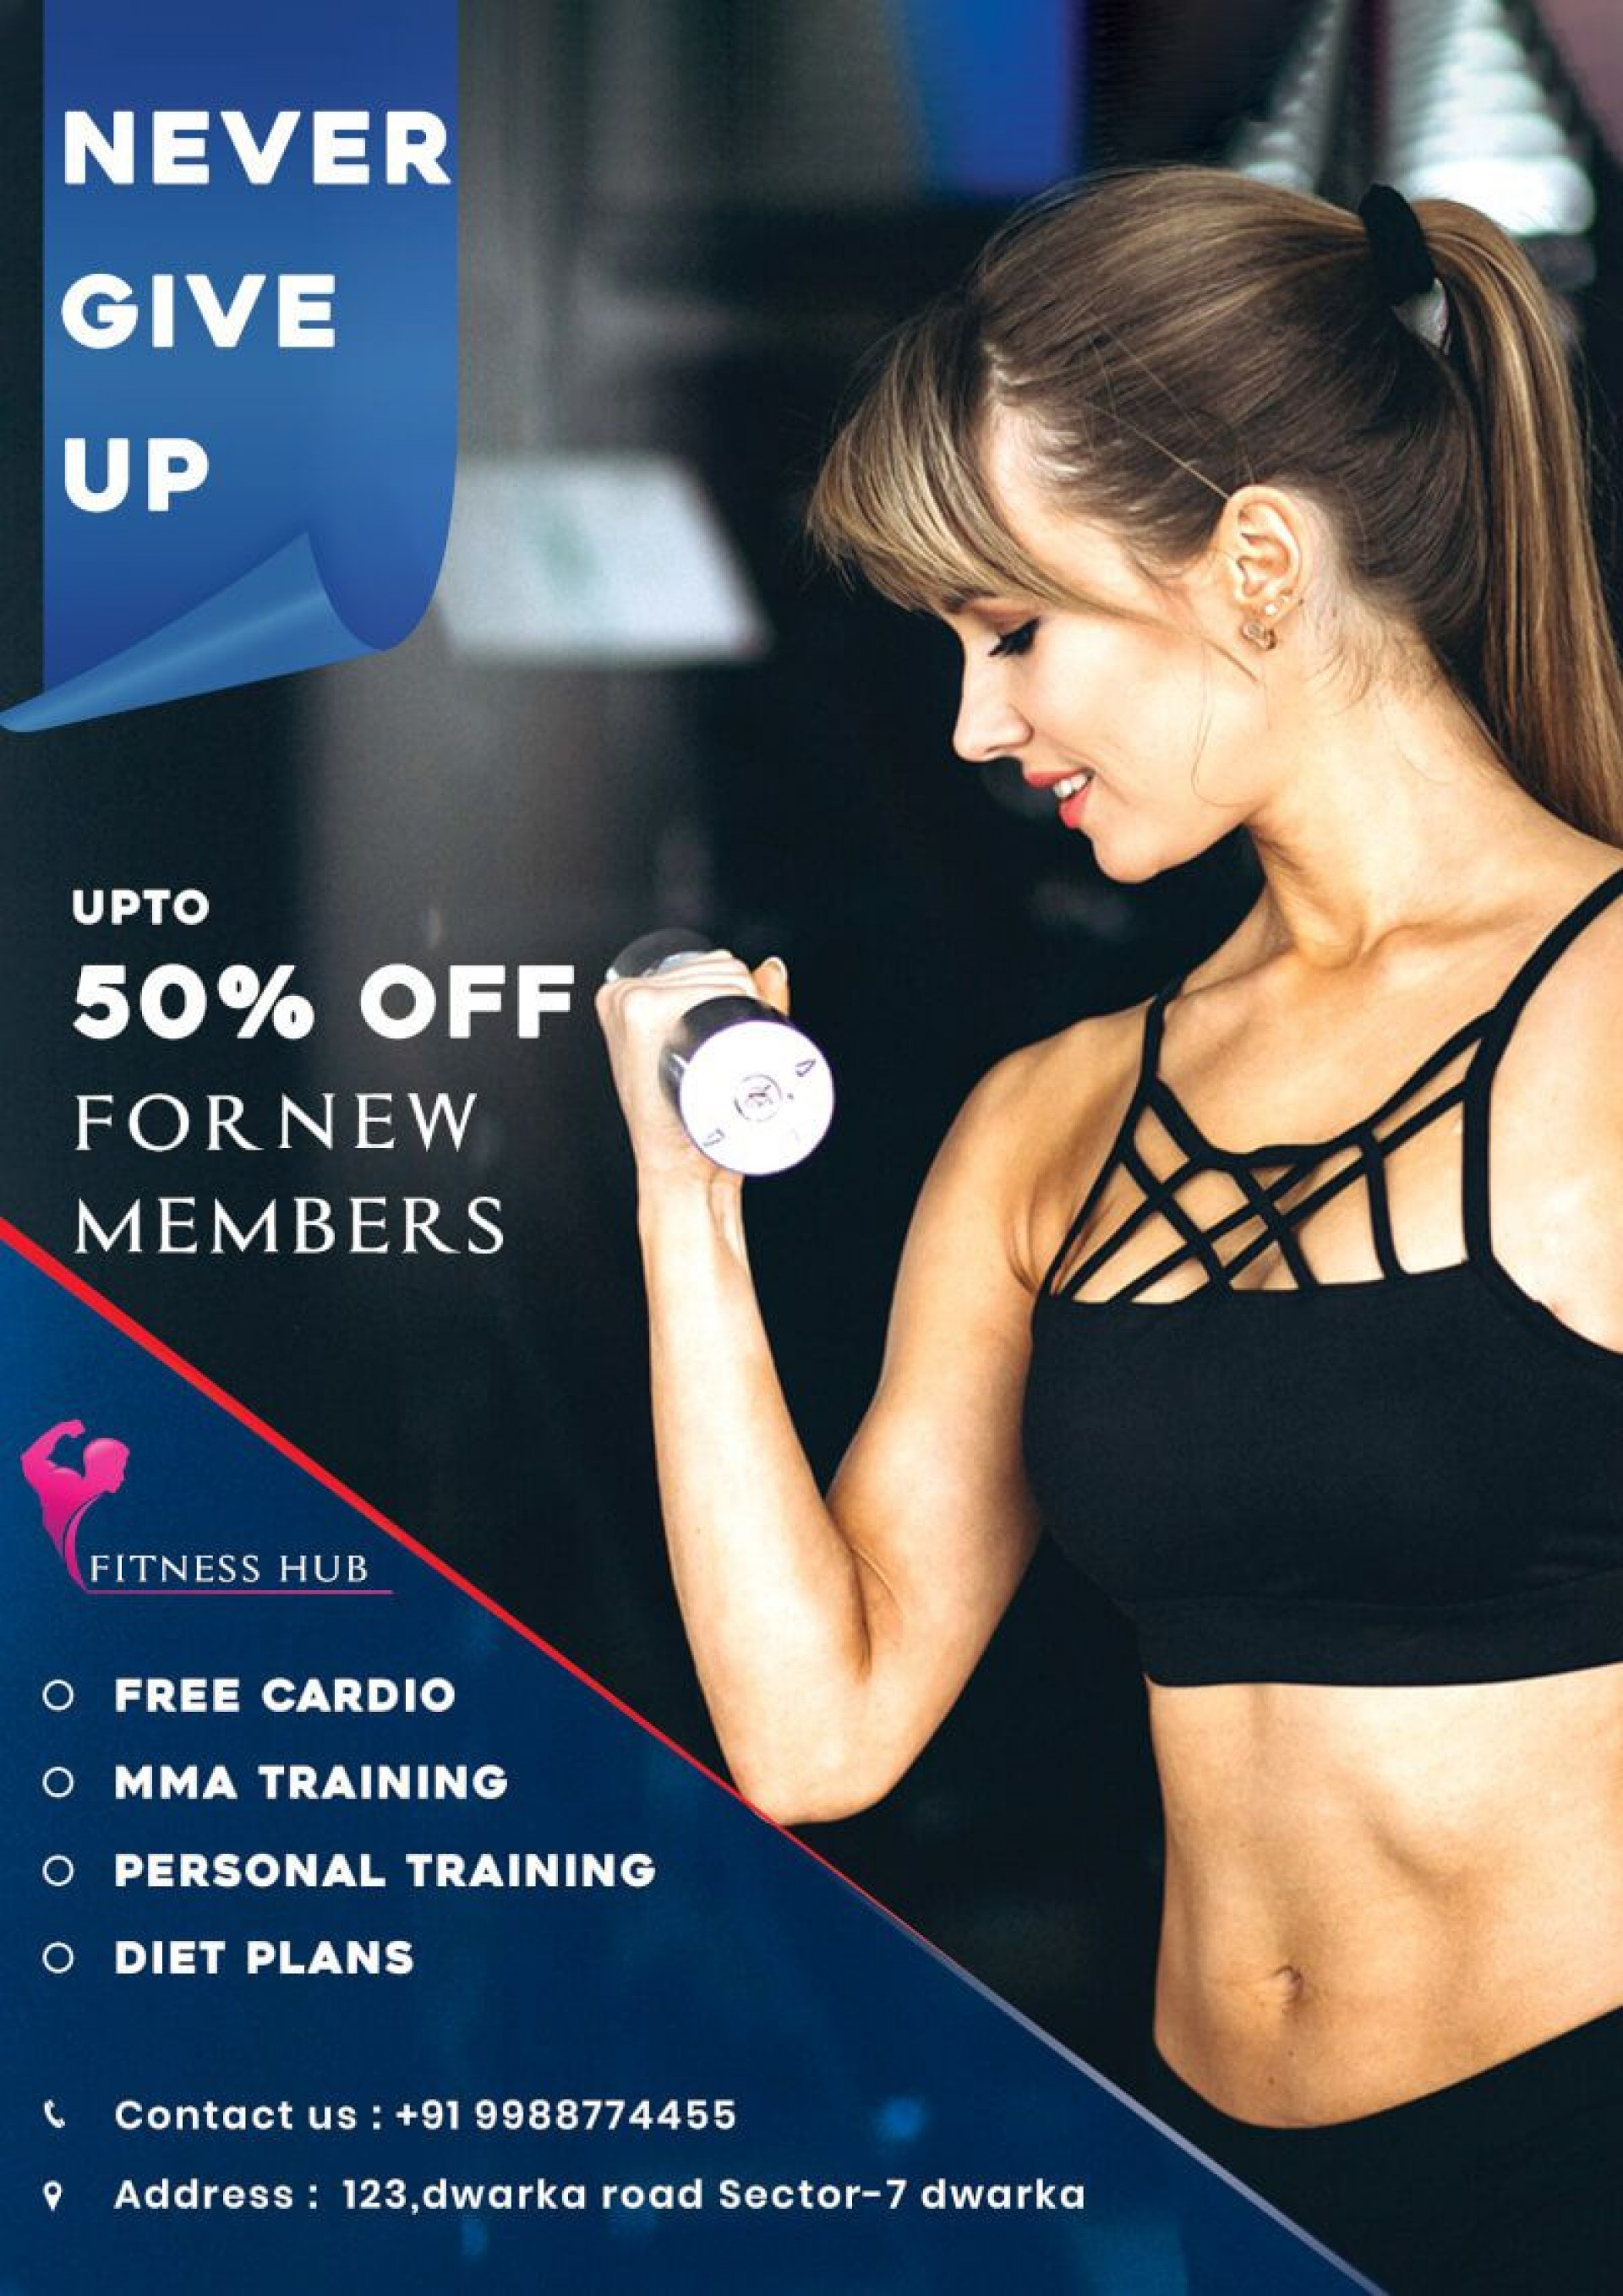 005 Incredible Personal Trainer Flyer Template Image  Word Psd1920